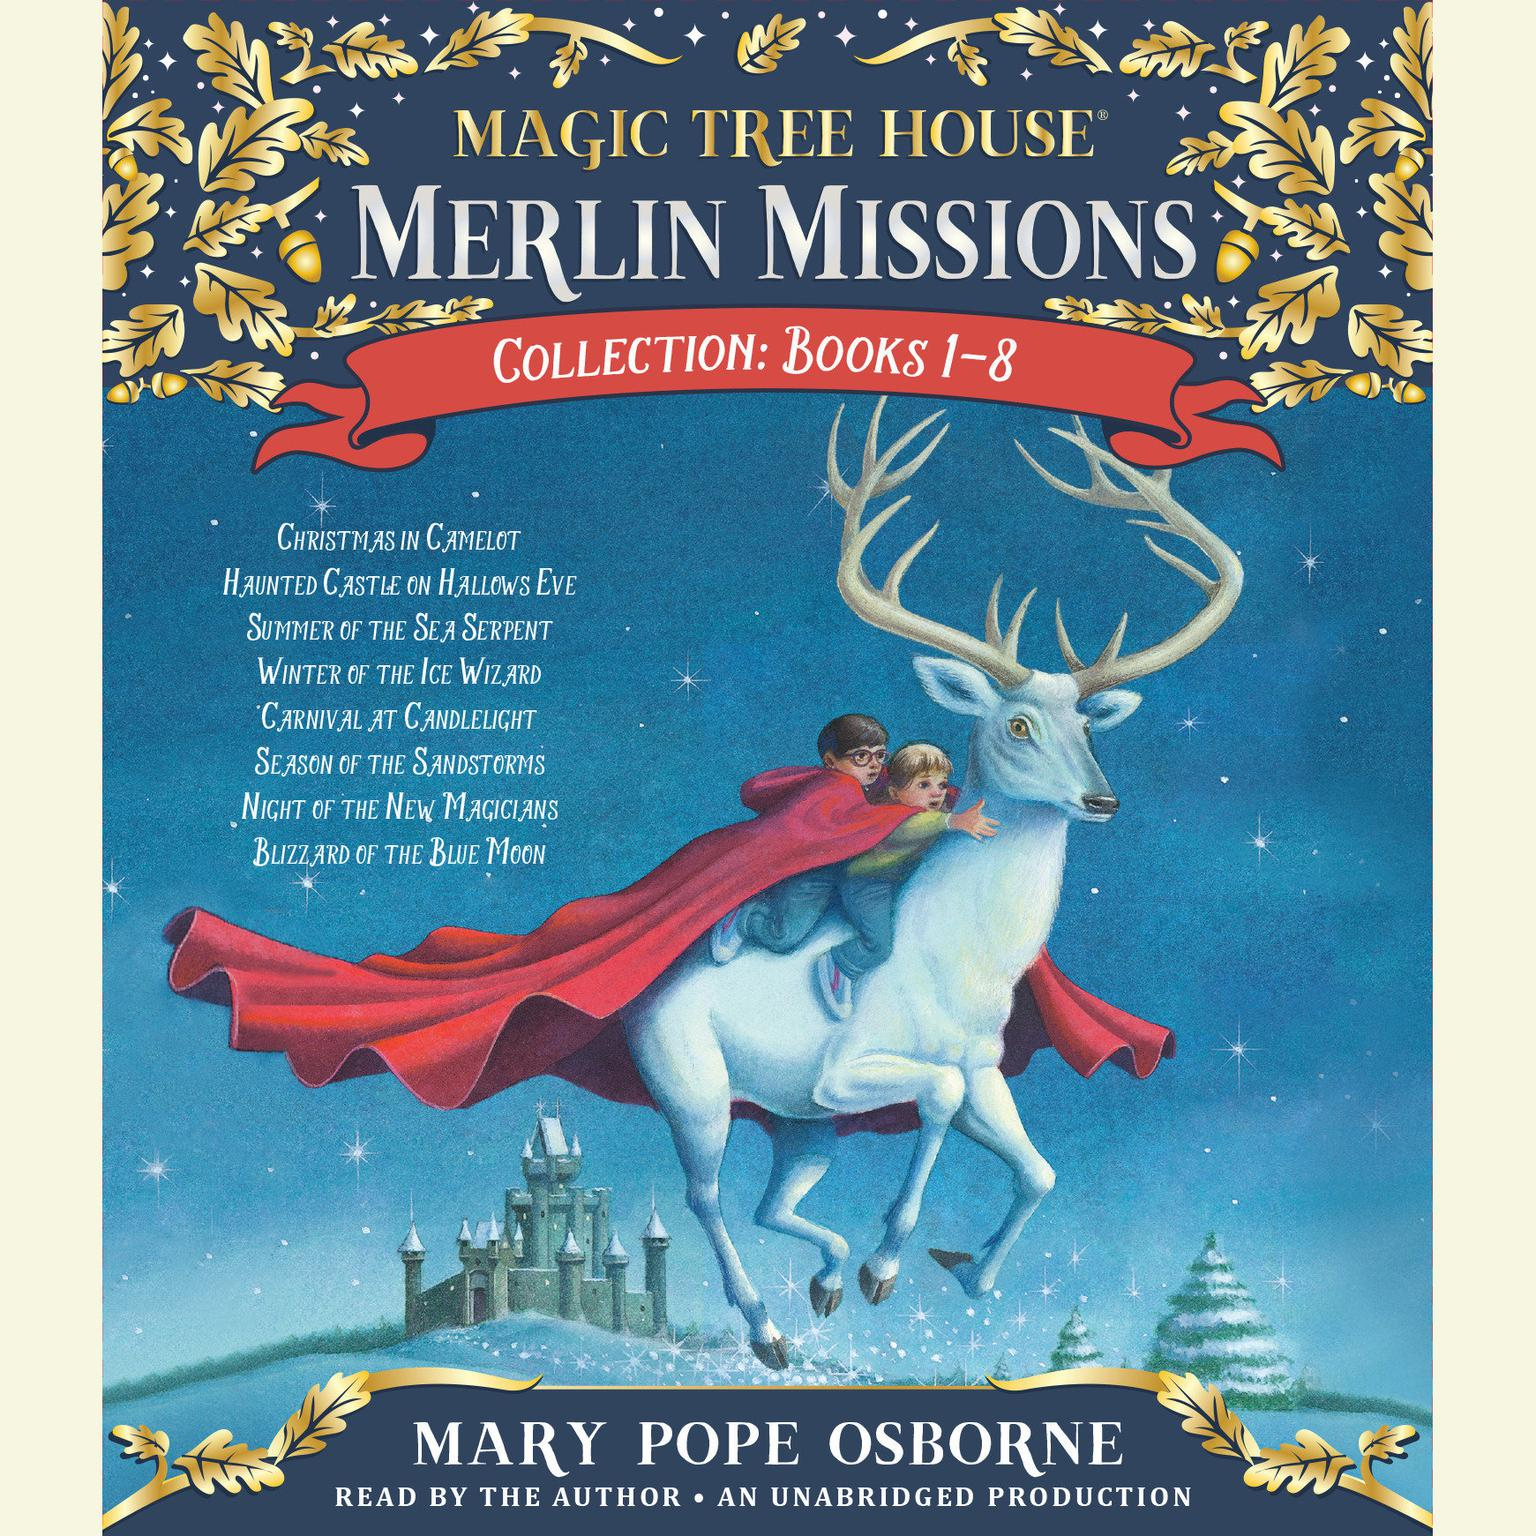 Printable Merlin Missions Collection: Books 1-8: Christmas in Camelot; Haunted Castle on Hallows Eve; Summer of the Sea Serpent; Winter of the Ice Wizard; Carnival at Candlelight; and more Audiobook Cover Art